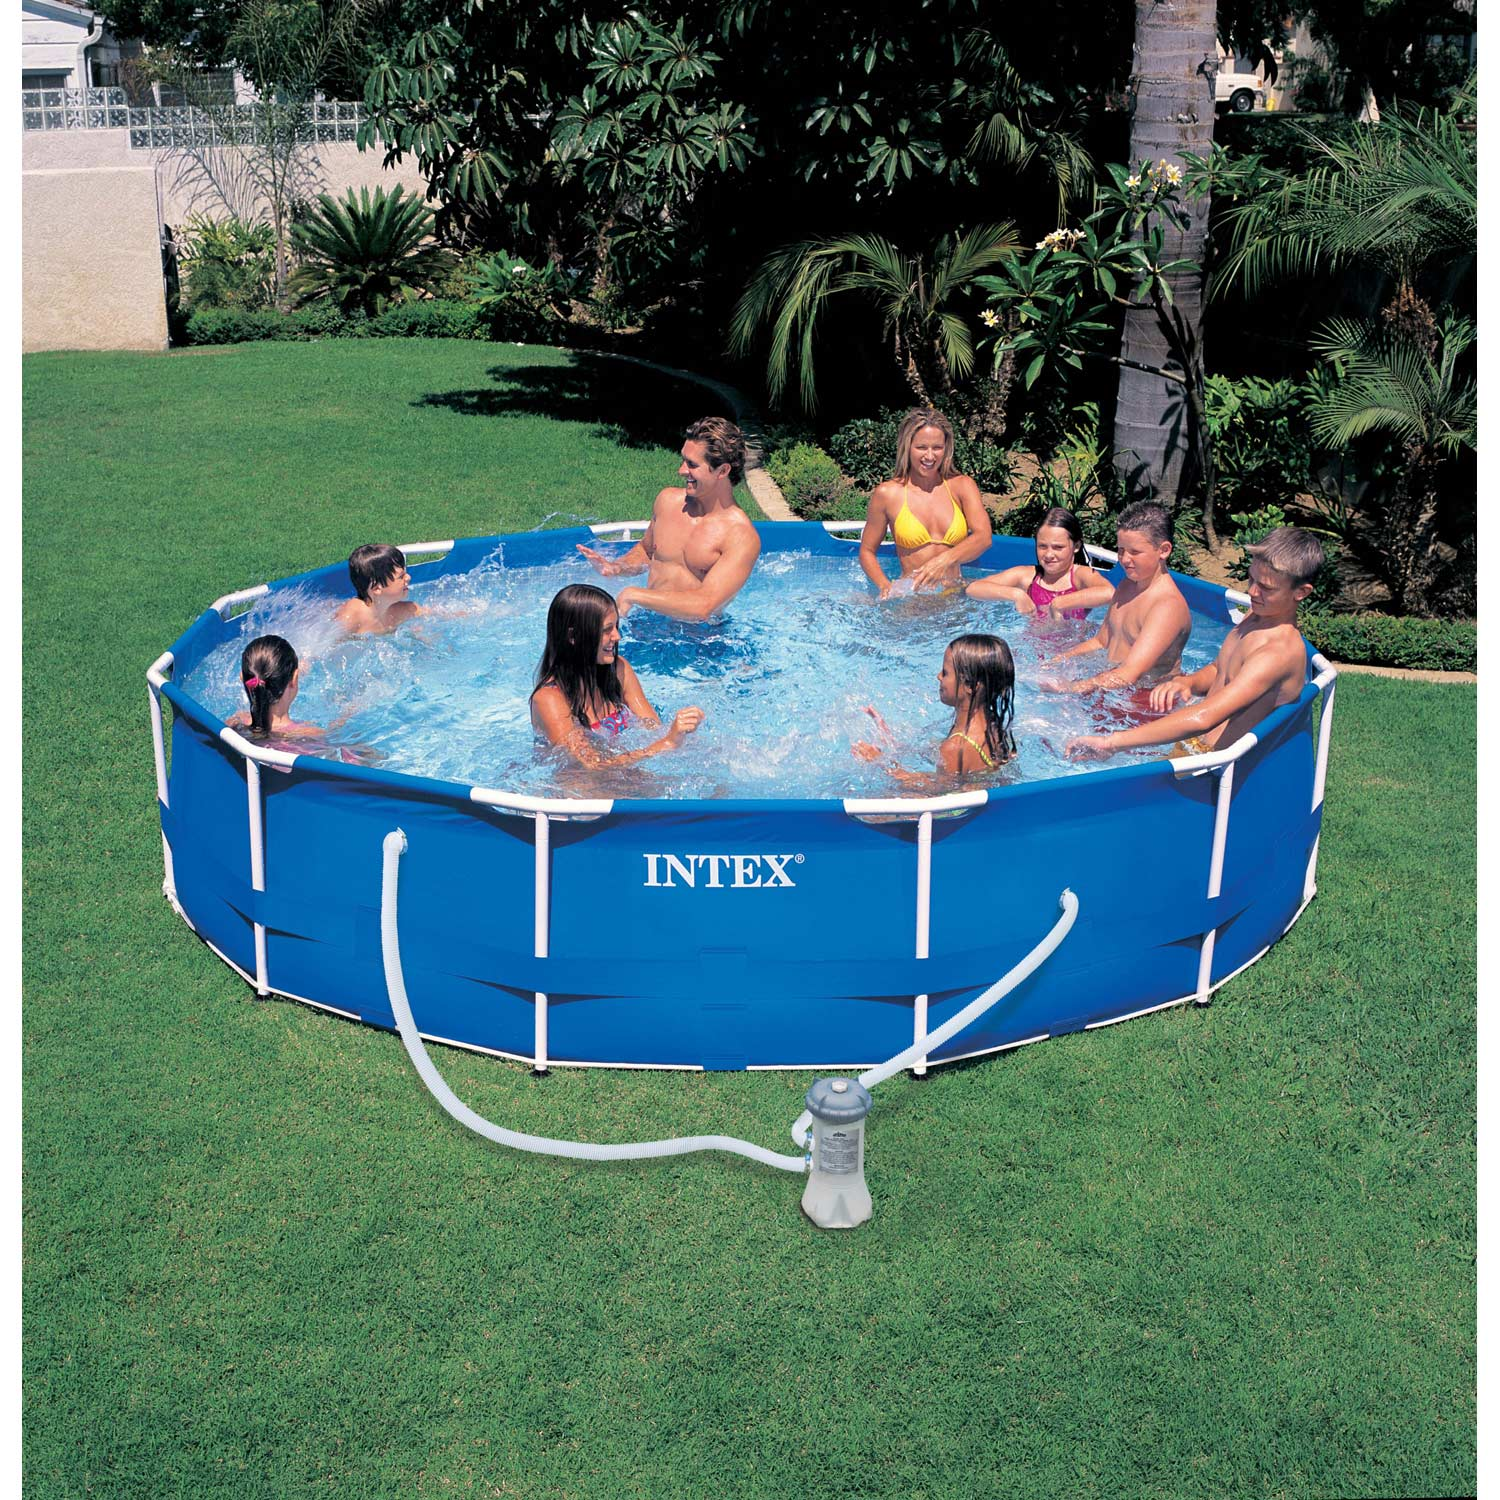 Piscine hors sol autoportante tubulaire metal frame intex for Transat piscine leroy merlin